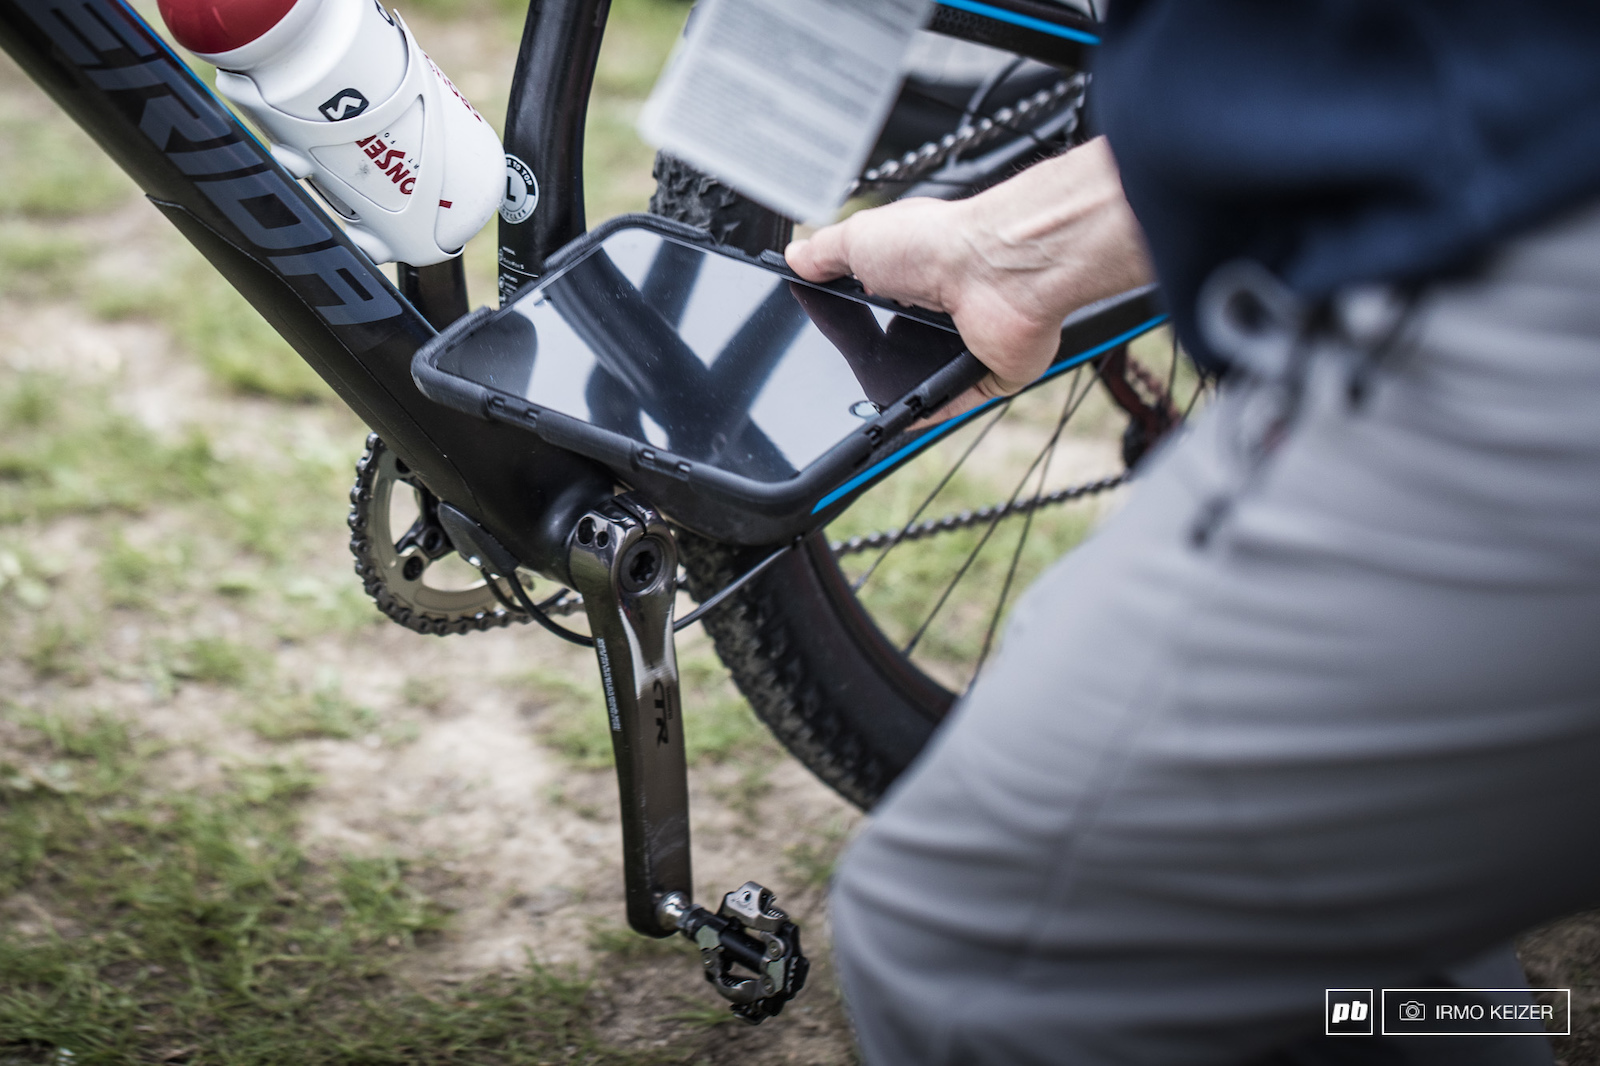 The UCI s iPad and app detects any magnetic abnormalities used to find hidden motors in bikes. So far none have been found in mountainbiking. Checks are done prior and after races.